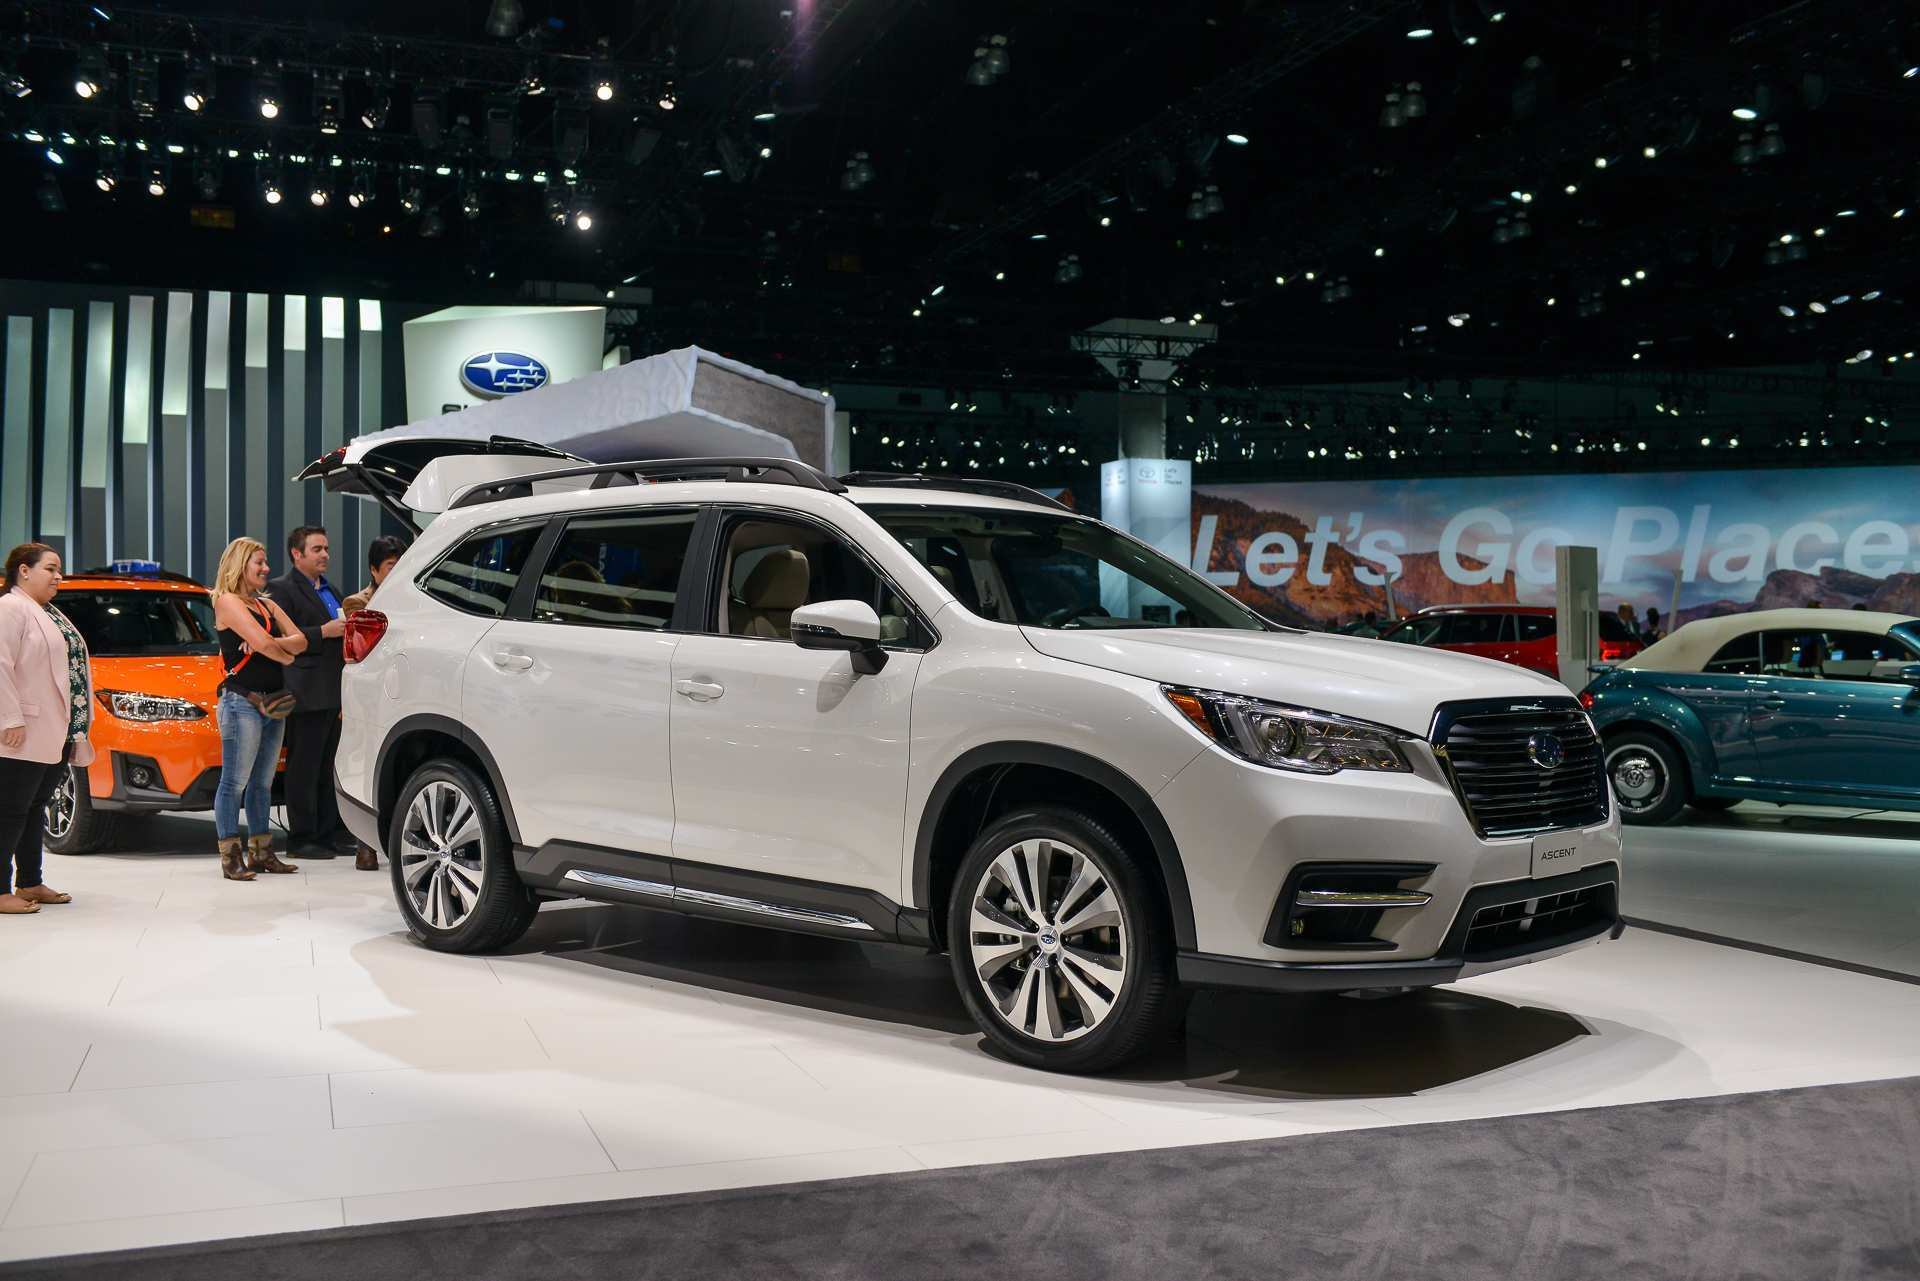 69 Concept of Subaru Ascent 2020 Mpg Release Date by Subaru Ascent 2020 Mpg